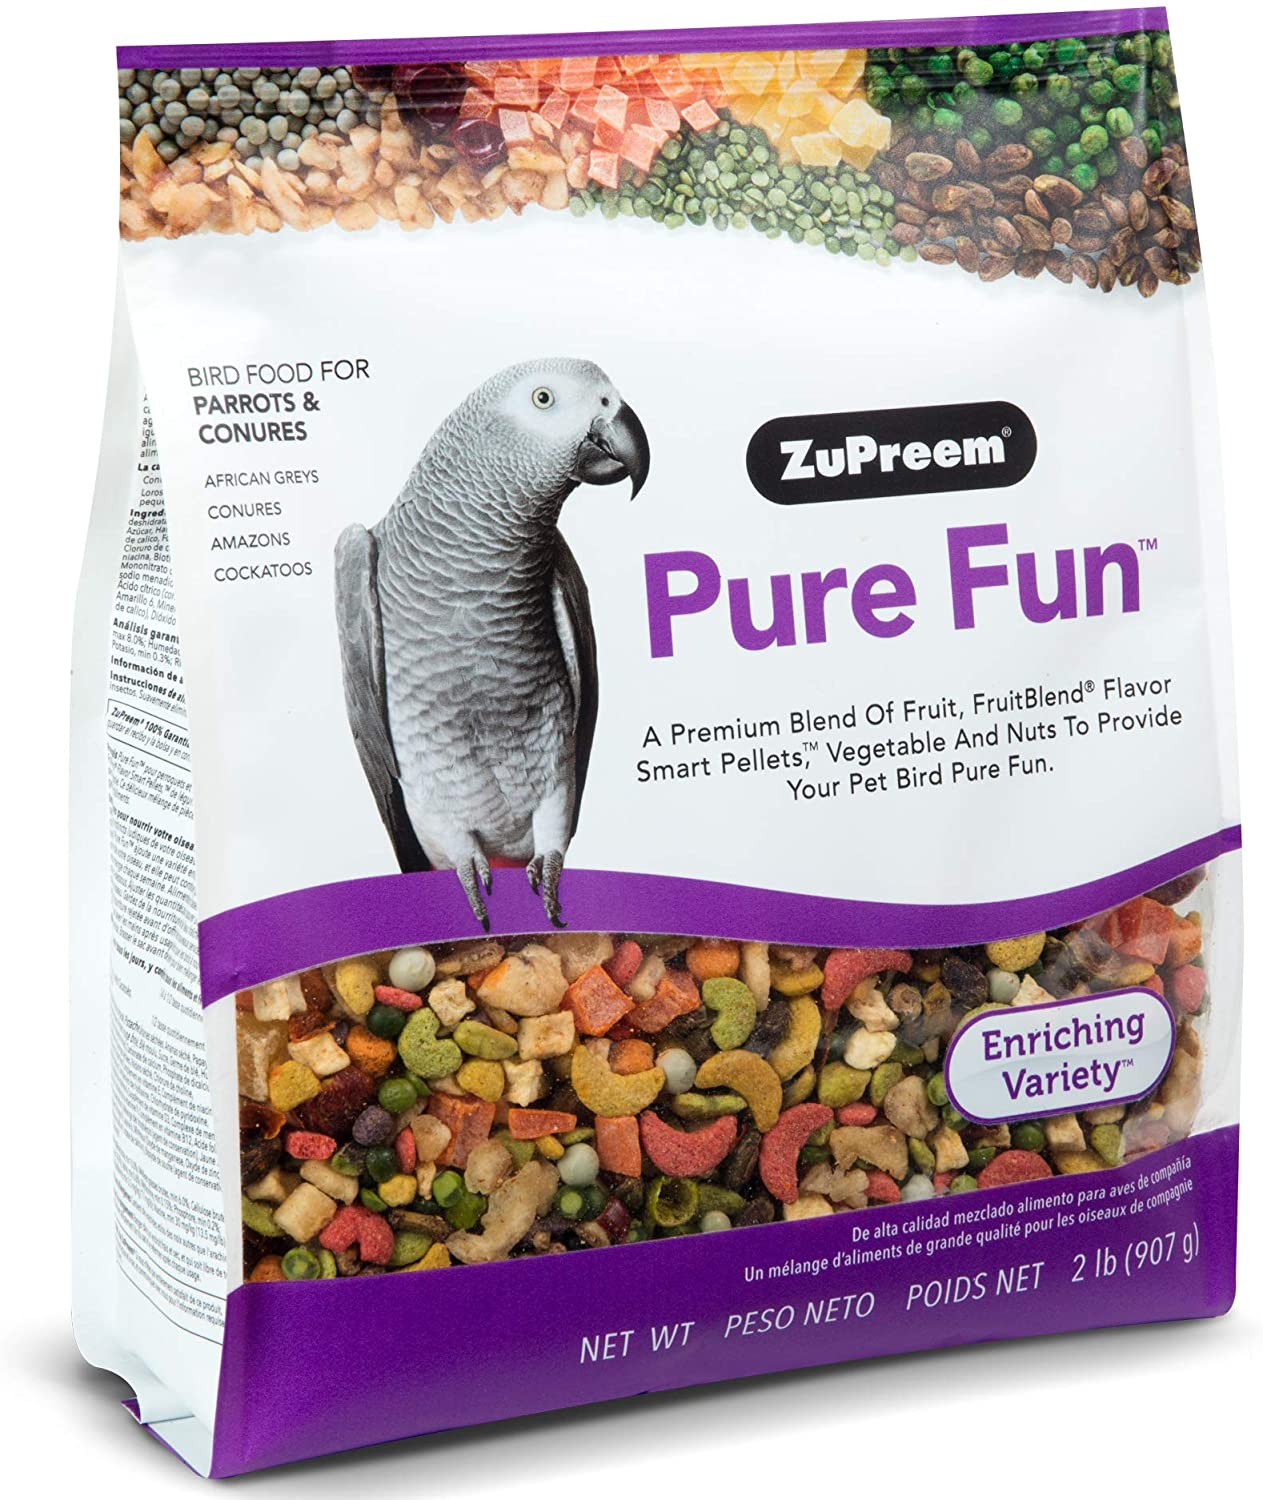 ZuPreem Pure Fun Bird Food for Parrots and Conures, 2 lb Bag (2-Pack) - Blend of Fruit, Natural FruitBlend Pellets, Vegetables, Nuts for Caiques, African Greys, Senegals, Amazons, Eclectus, Cockatoos